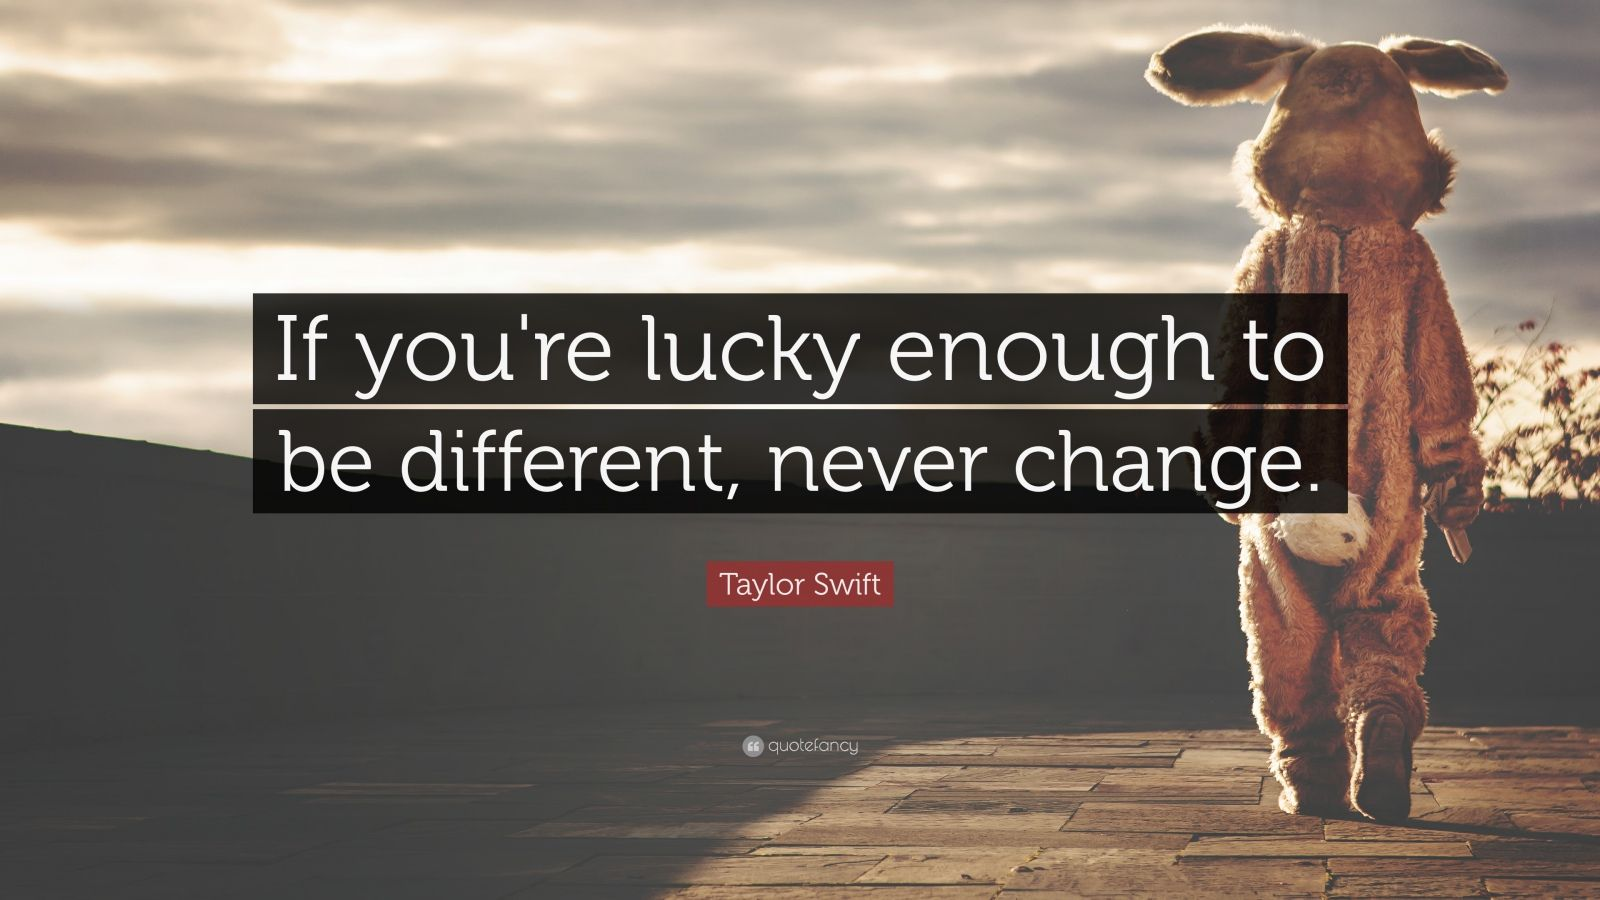 """Taylor Swift Quote: """"If you're lucky enough to be different, never change."""""""